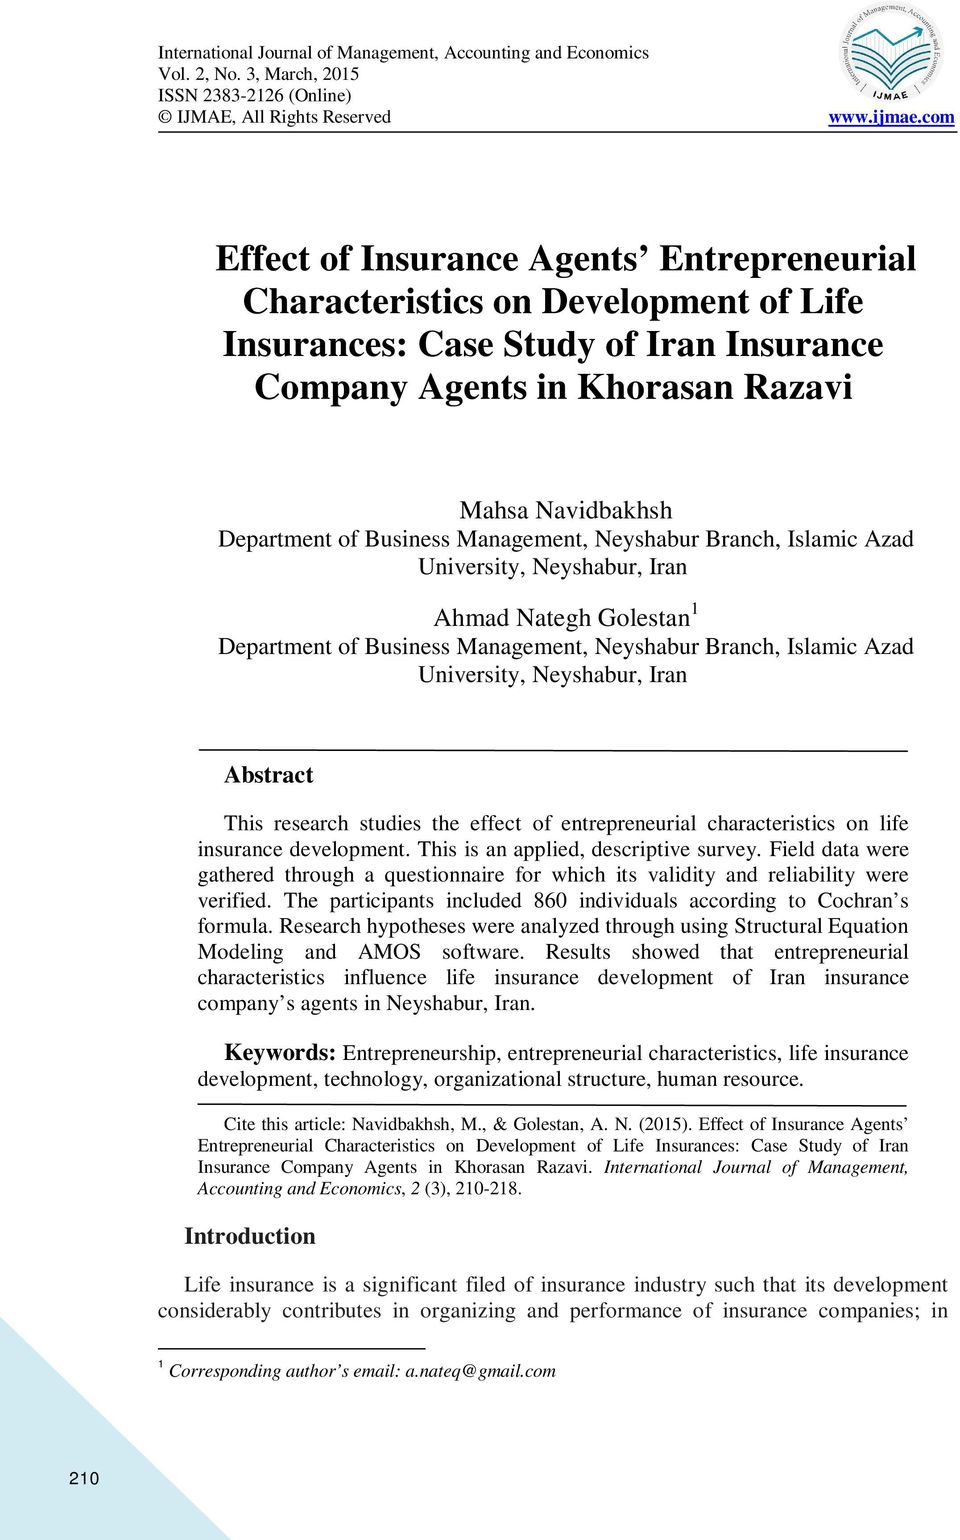 This research studies the effect of entrepreneurial characteristics on life insurance development. This is an applied, descriptive survey.